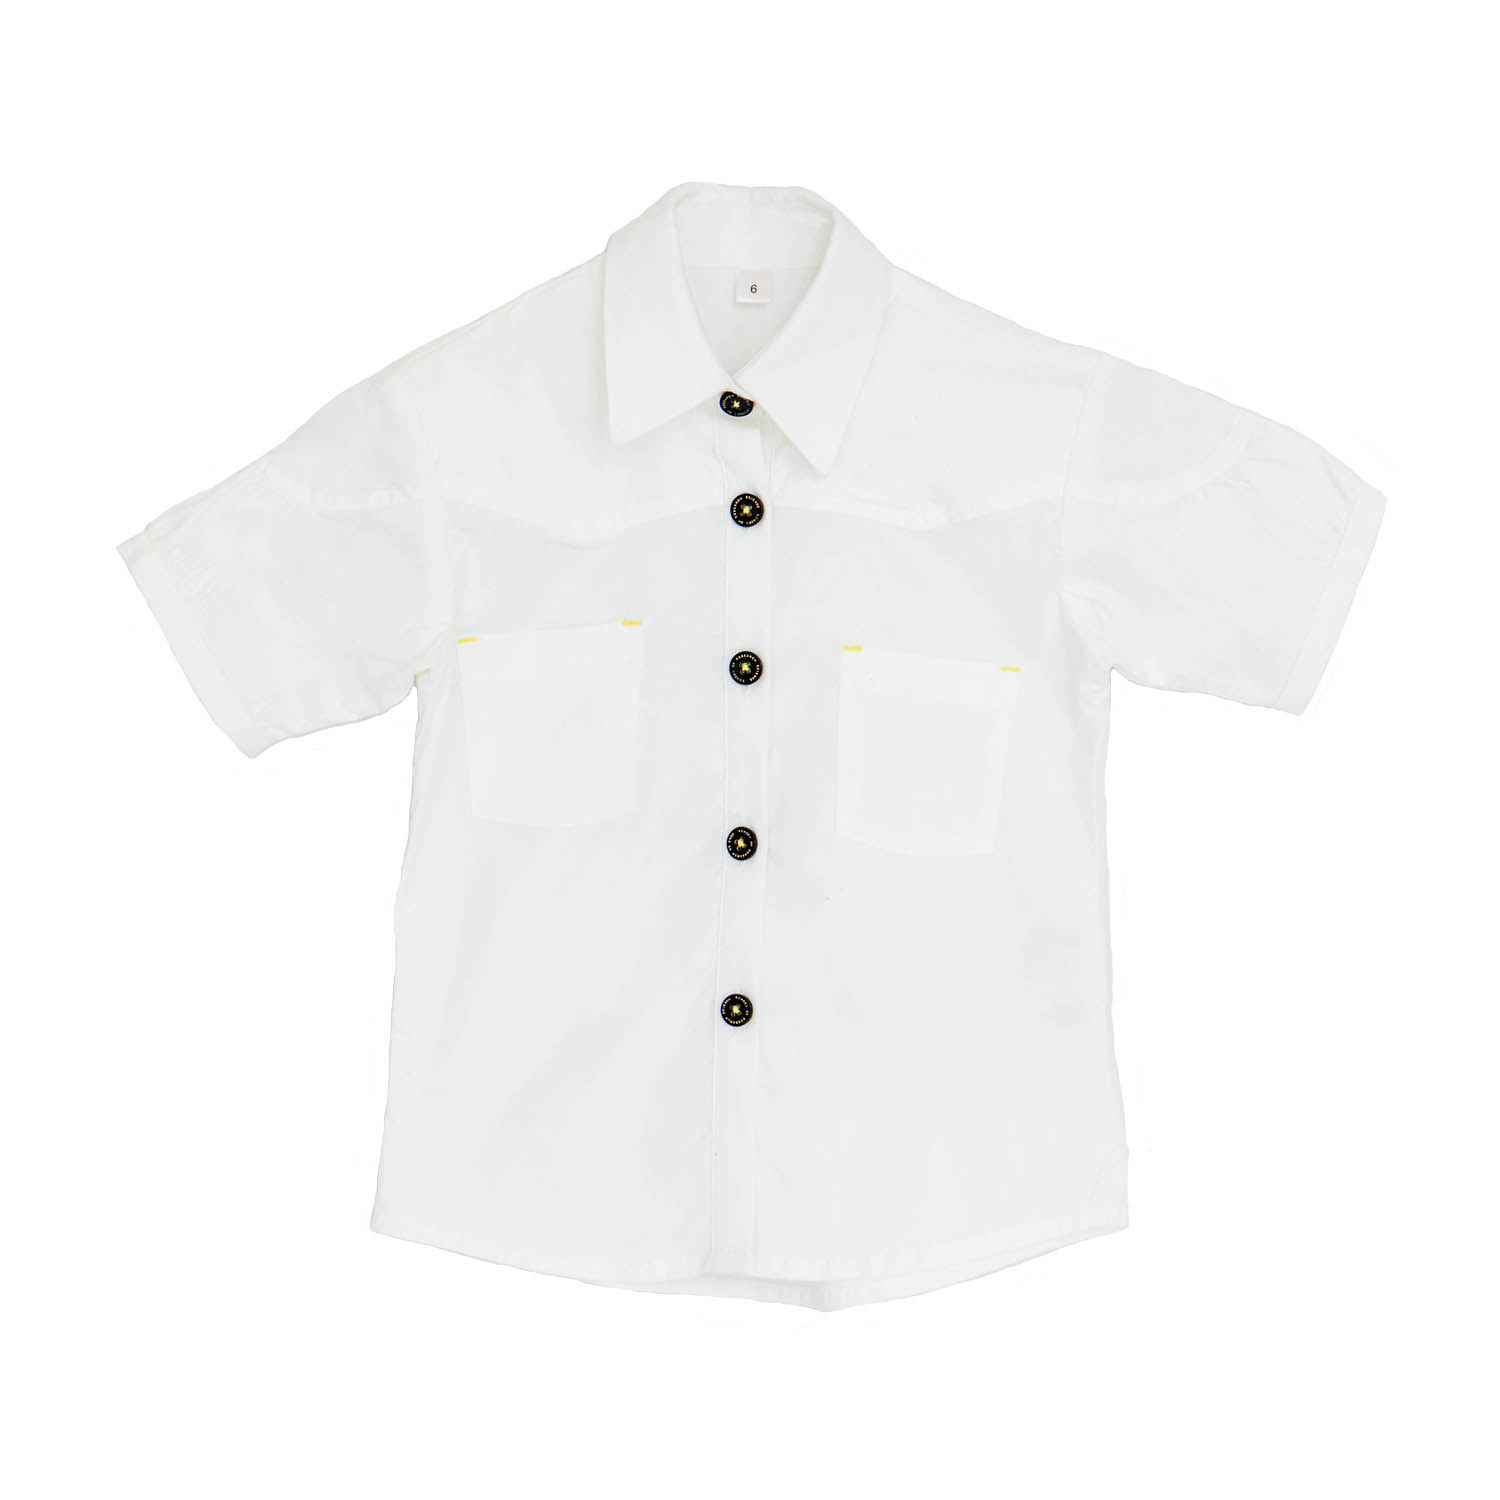 Girls White Blouse Short Sleeve